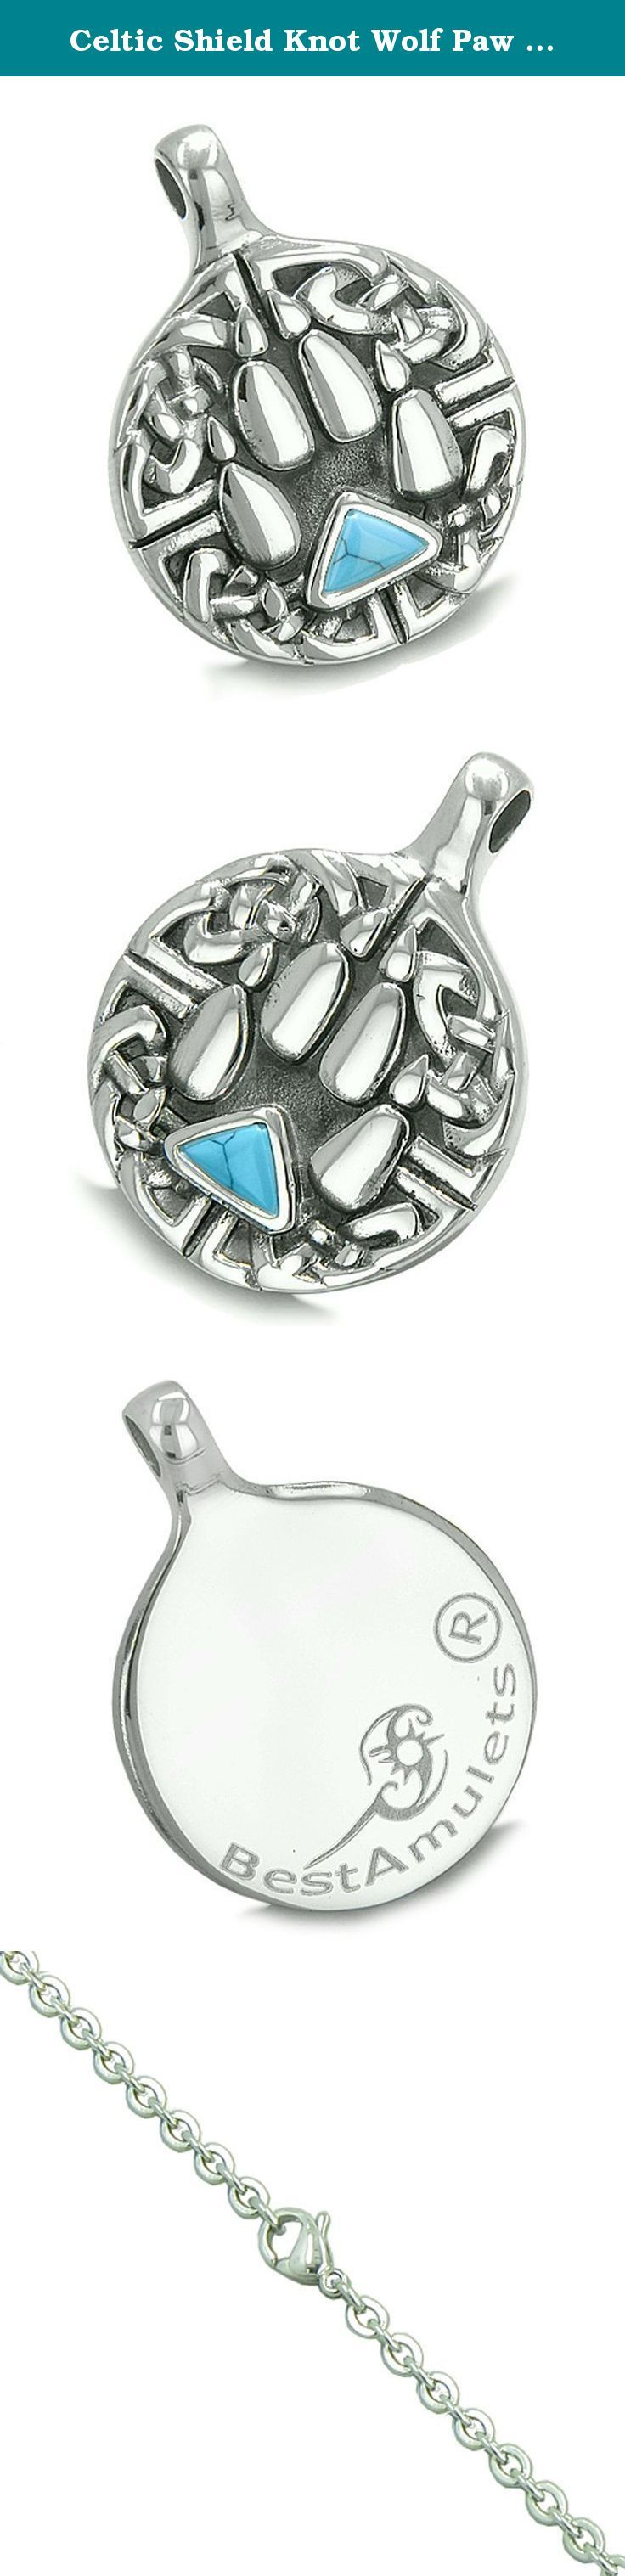 Celtic Shield Knot Wolf Paw Triangle Energy Simulated Turquoise Crystal Pendant 22 Inch Necklace. Absolutely Unique and One of the Kind Celtic Shield Knot and Wolf Paw Medallion Amulet. Made from Stainless Steel and will look stunning. The Paw accent is adorned with Cute Triangle Shape Simulated Turquoise Crystal and makes it Very Special and Attractive Individual Amulet. The Medallion is created with Antiqued Black Color overlay. Turquoise Crystal stands for Metaphysical properties of...